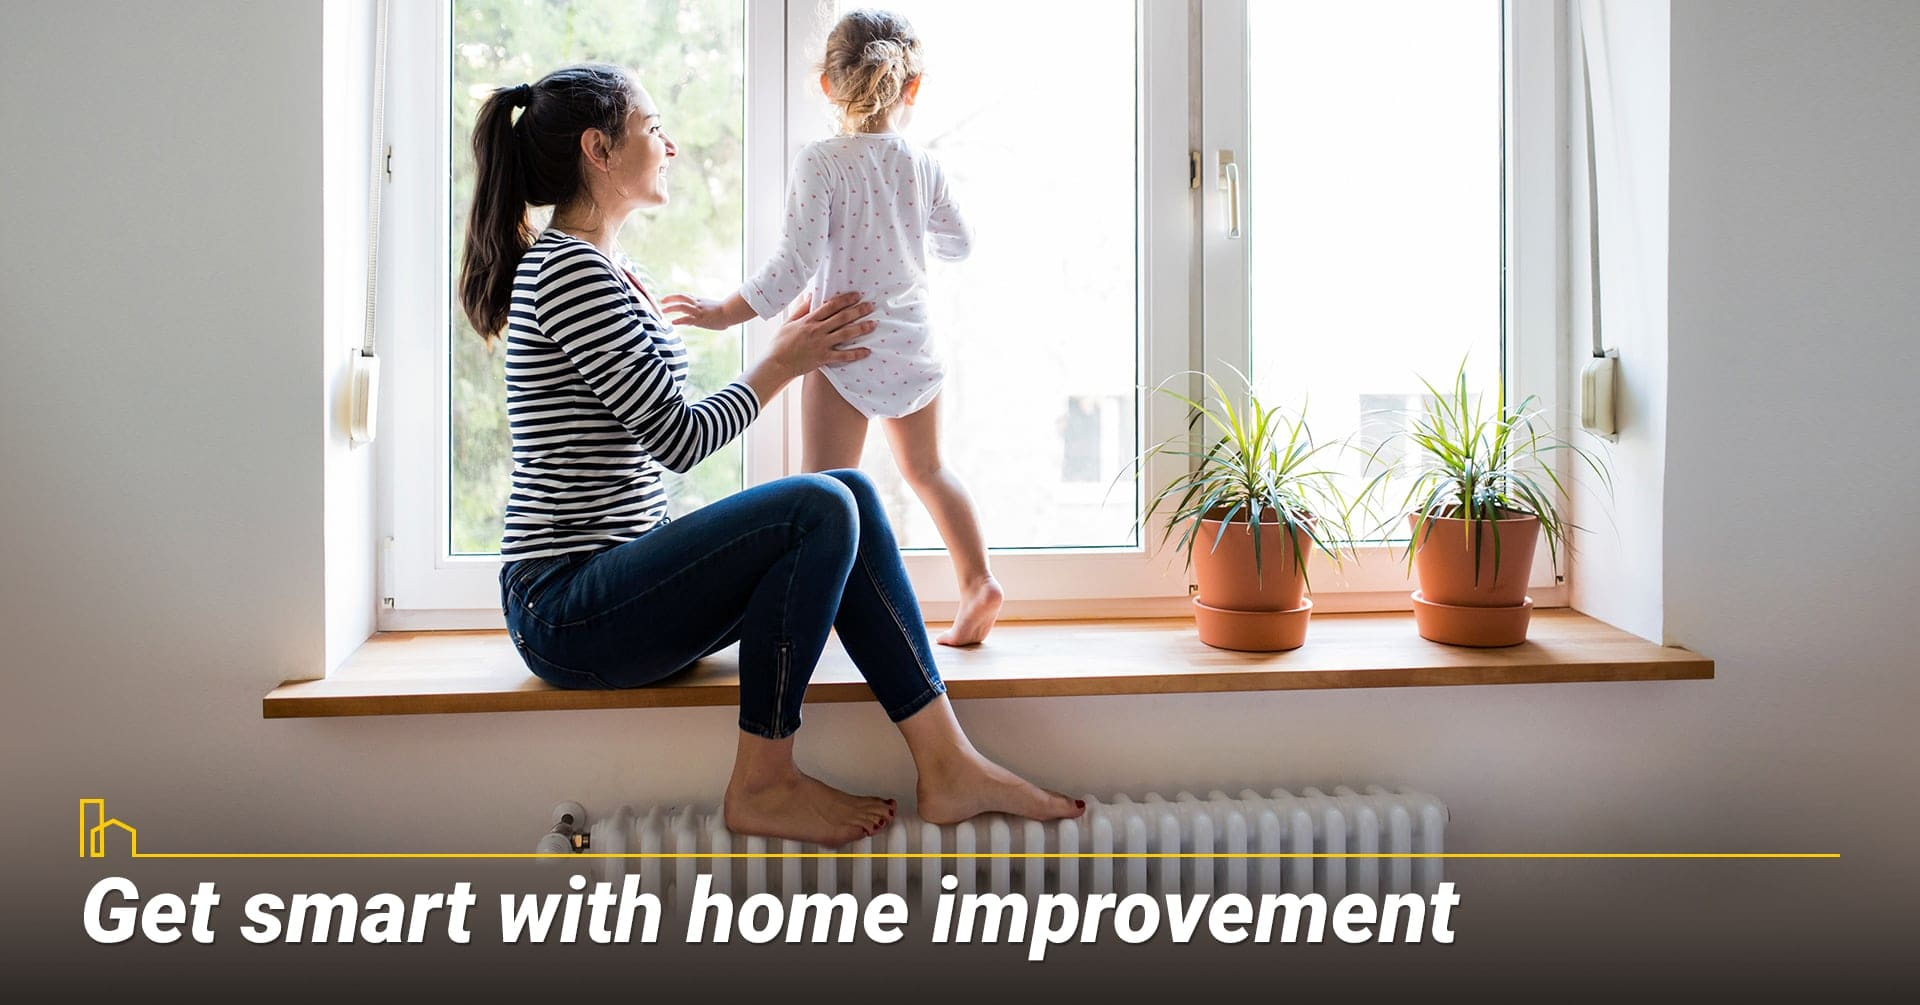 Get smart with home improvement, incorporate technology into your home improvement